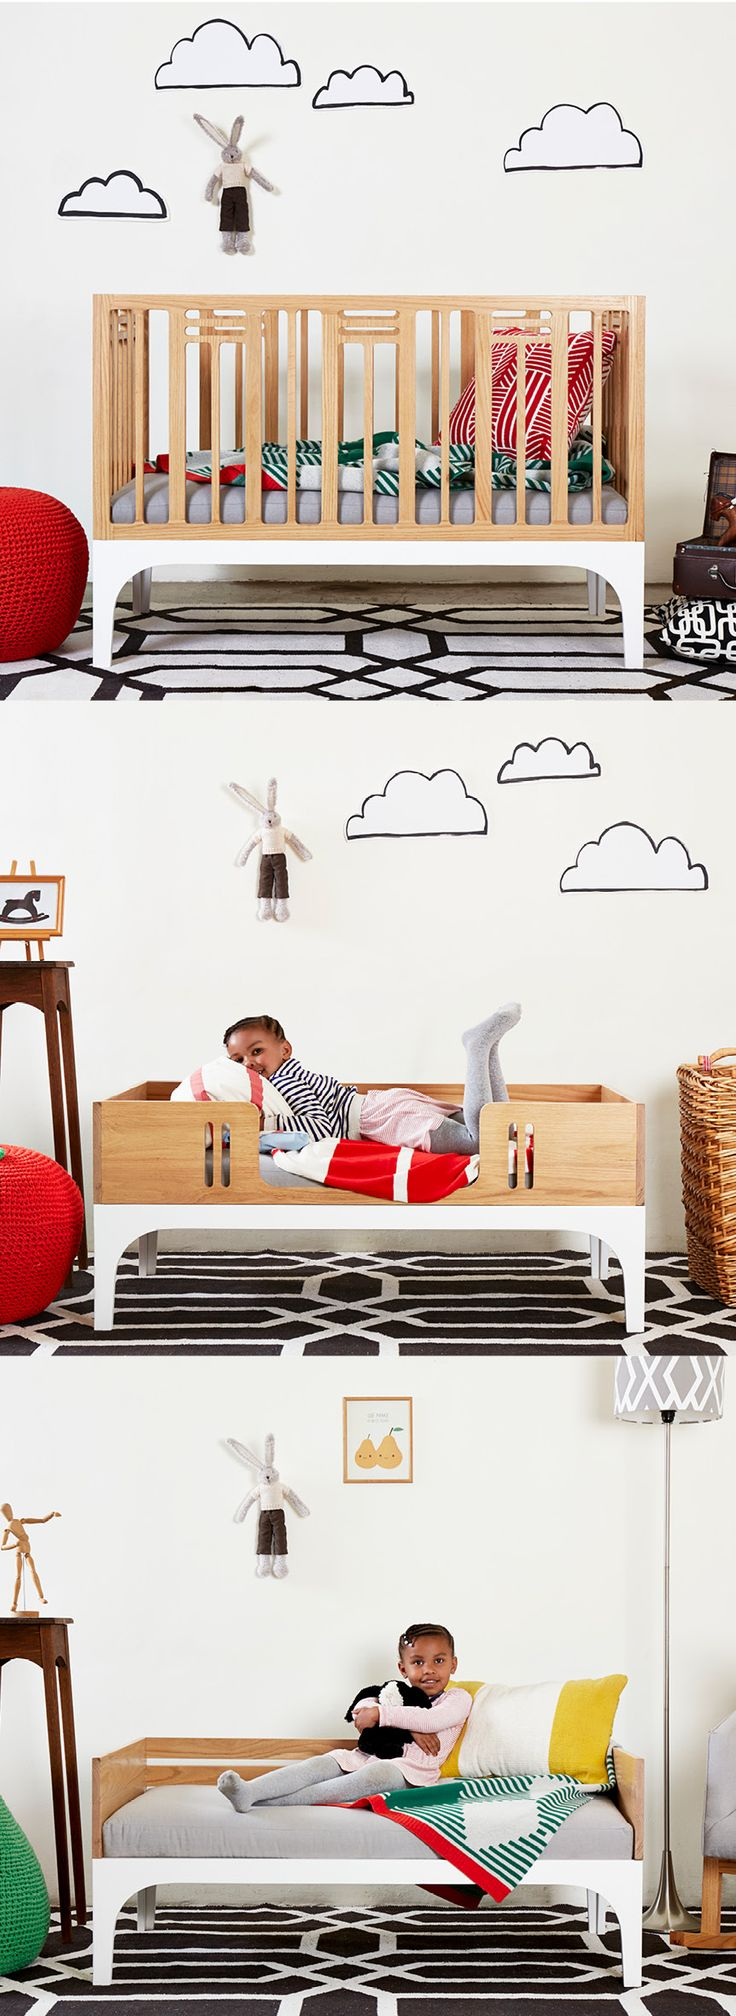 COCO COT WITH CONVERSION KIT:  The Coco cot is bright and spirited with its functional bars transformed into a decorative pattern. The Conversion Kit allows the cot to convert into a toddler bed, after which it converts again, to become a daybed.  Made from solid wood it's sized for a child but designed with you in mind.  For prices and orders email info@bunnyandclyde.co.za